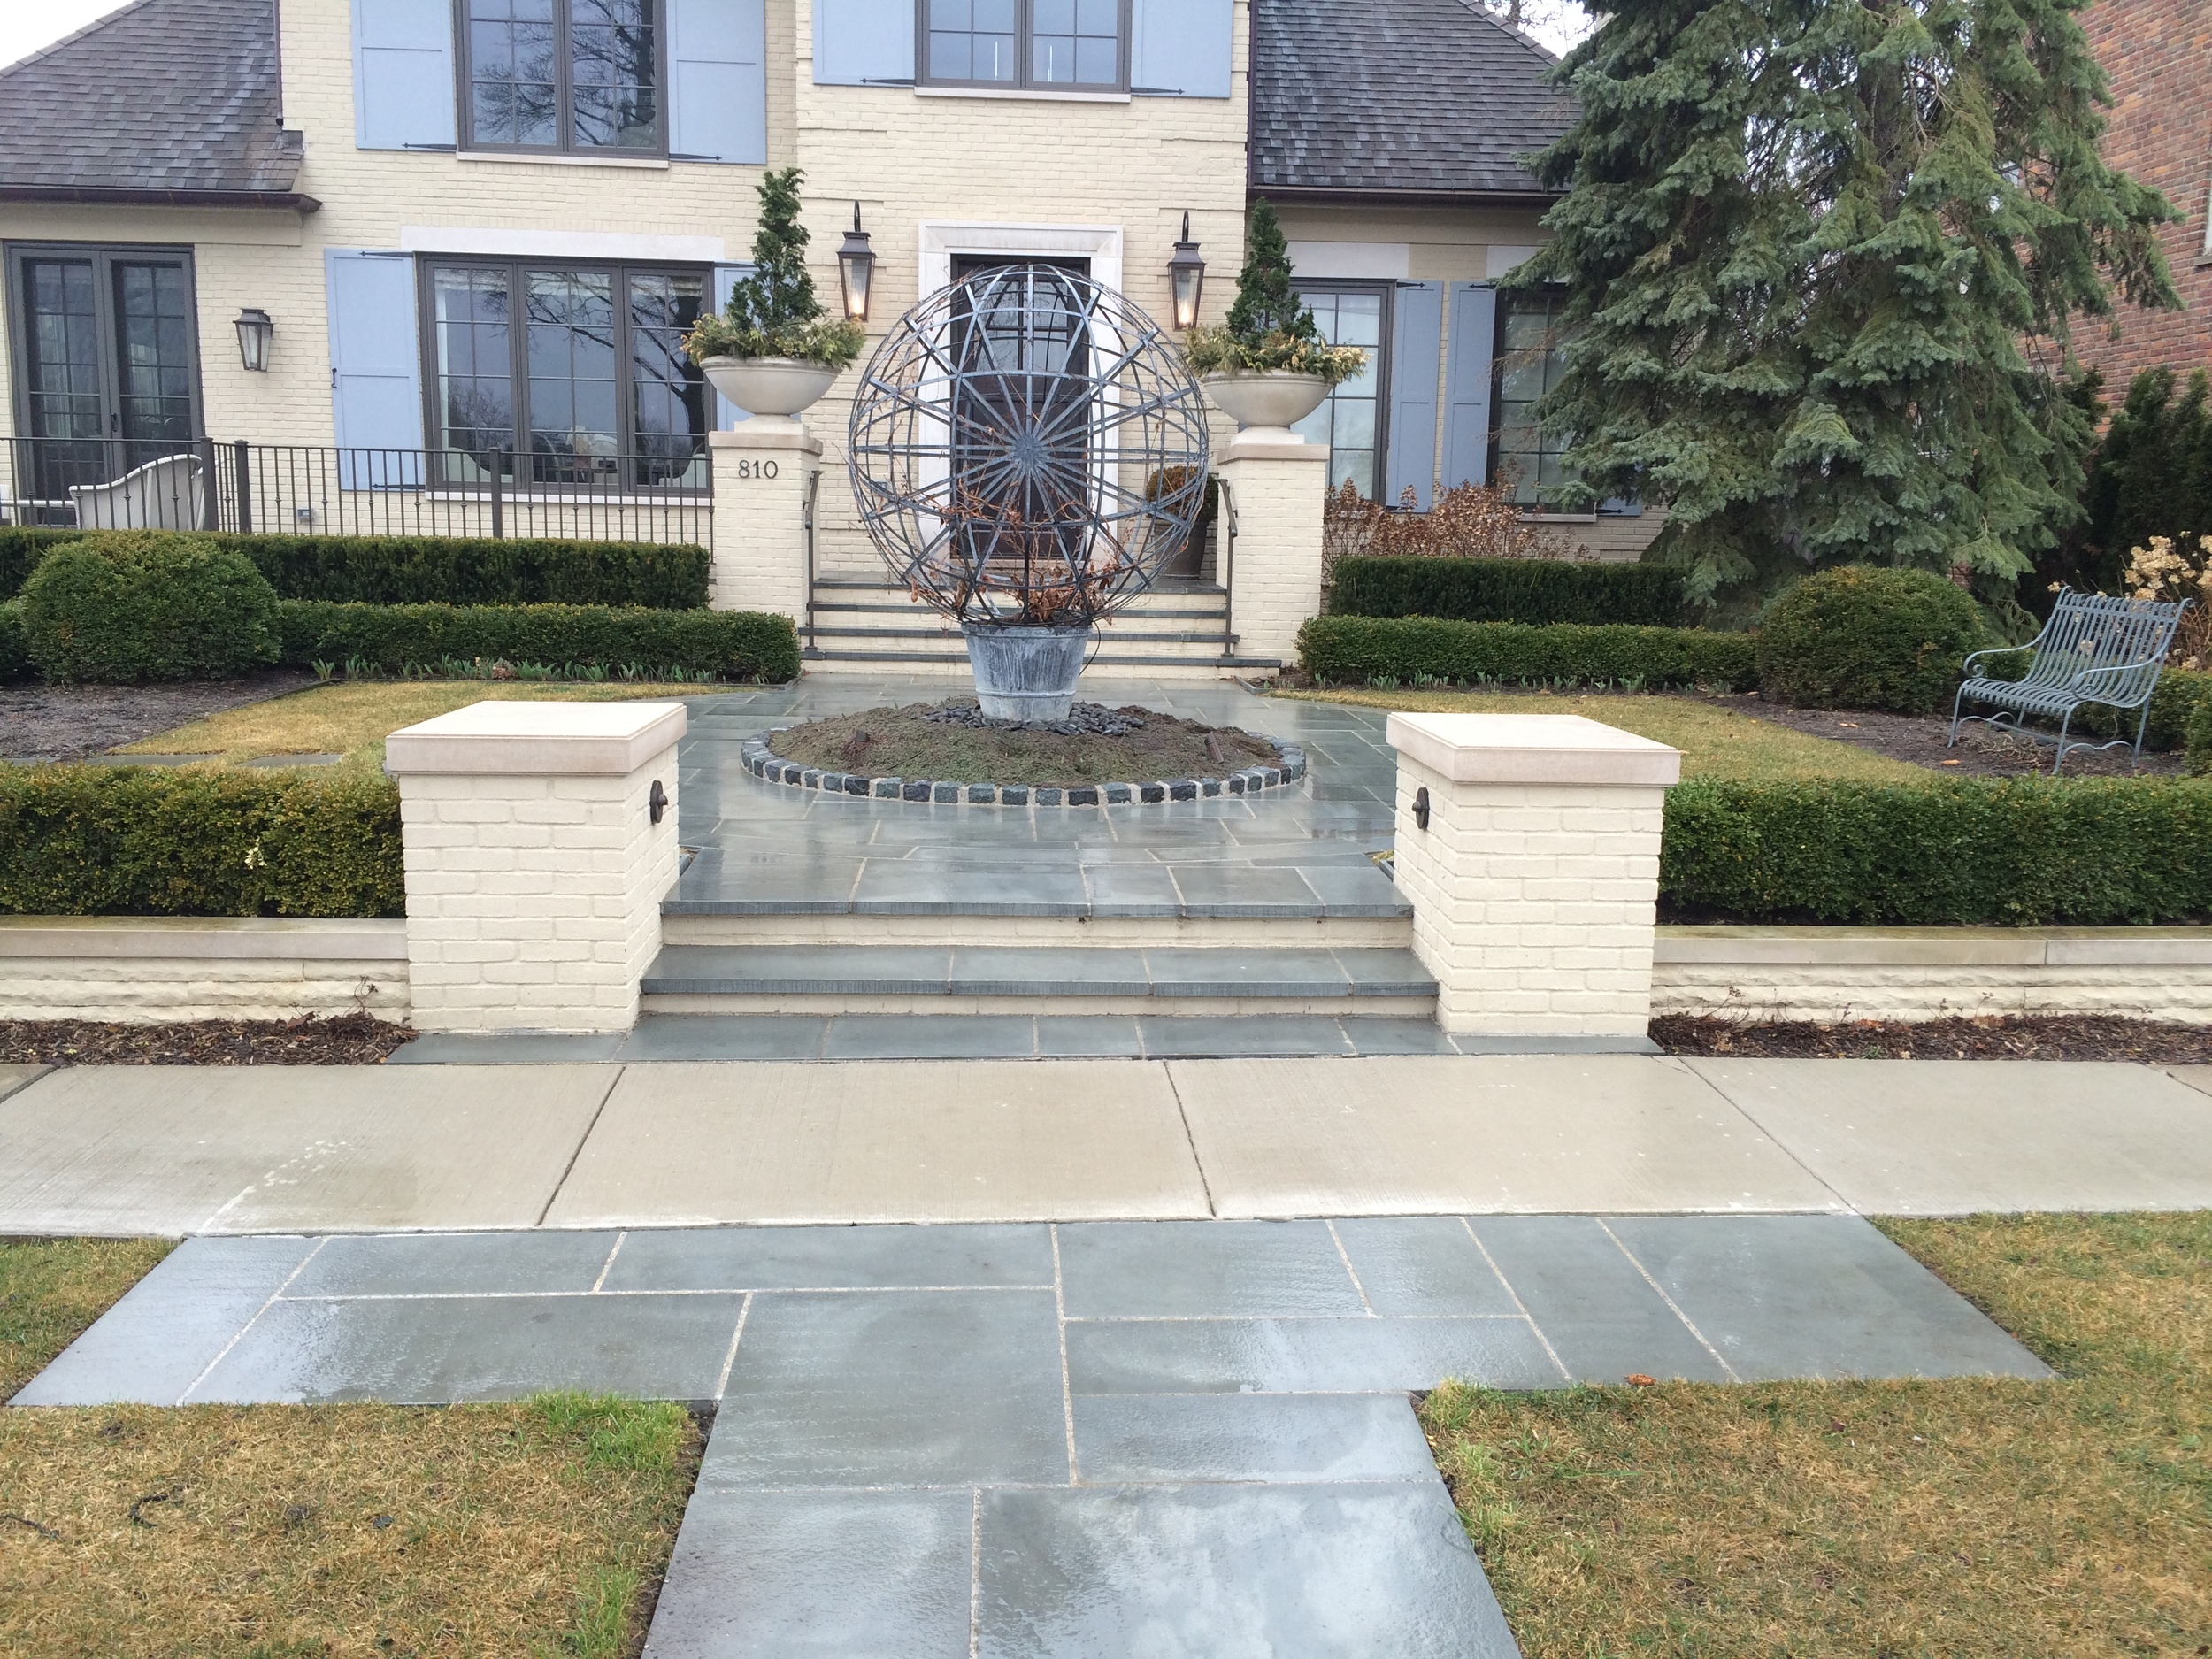 bluestone patio and stairs in front of house